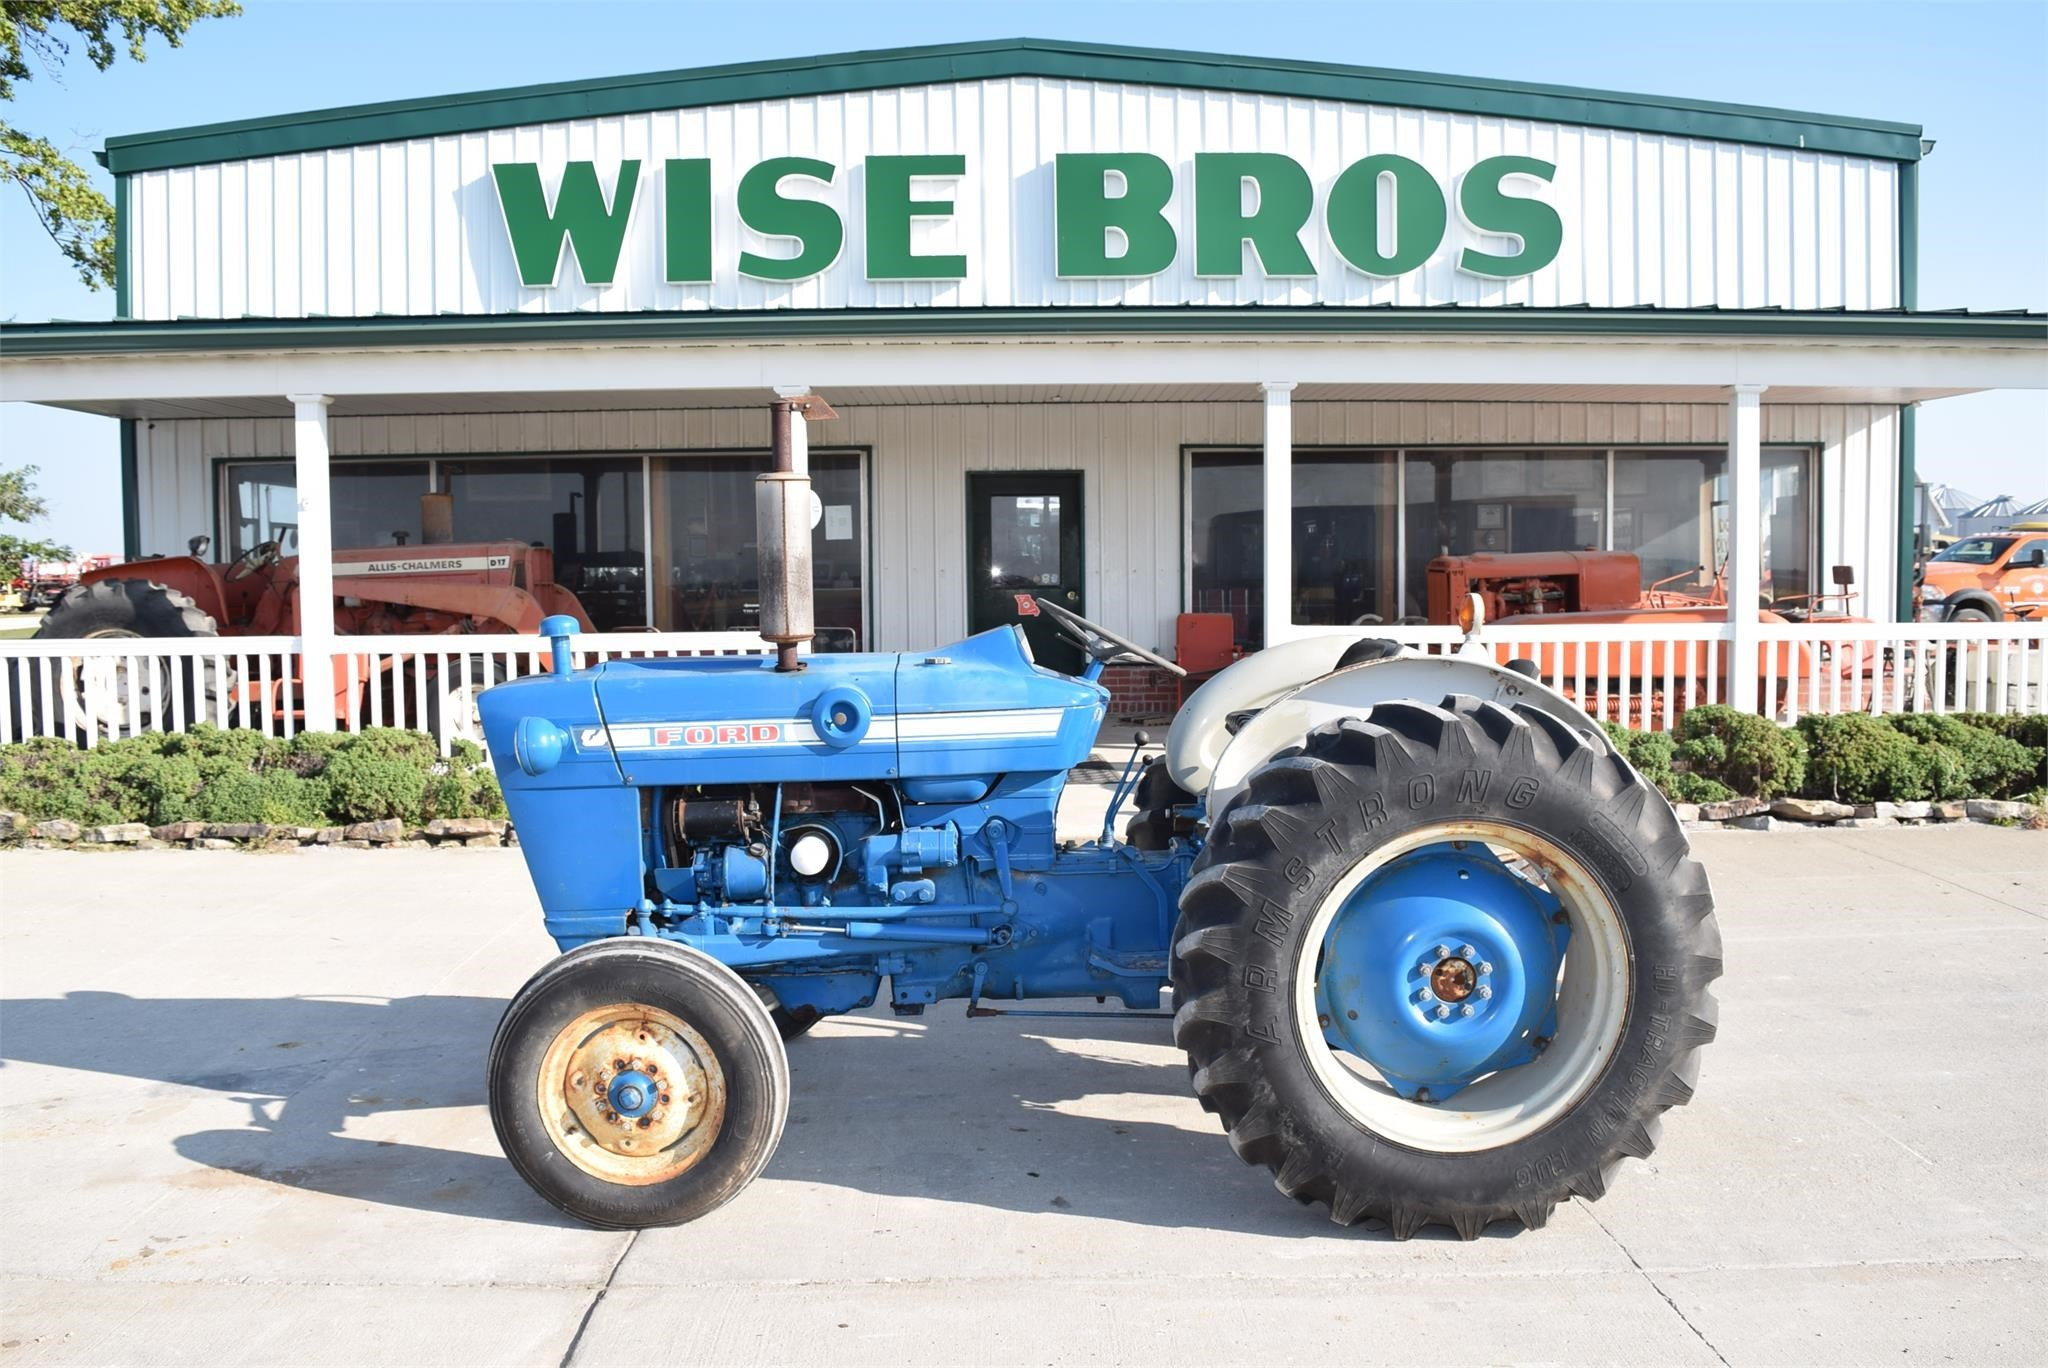 ford tractor serial numbers and model identification. 1969 Ford 3000 Tractor Kingdom City Missouri 5 750 Machinery Pete